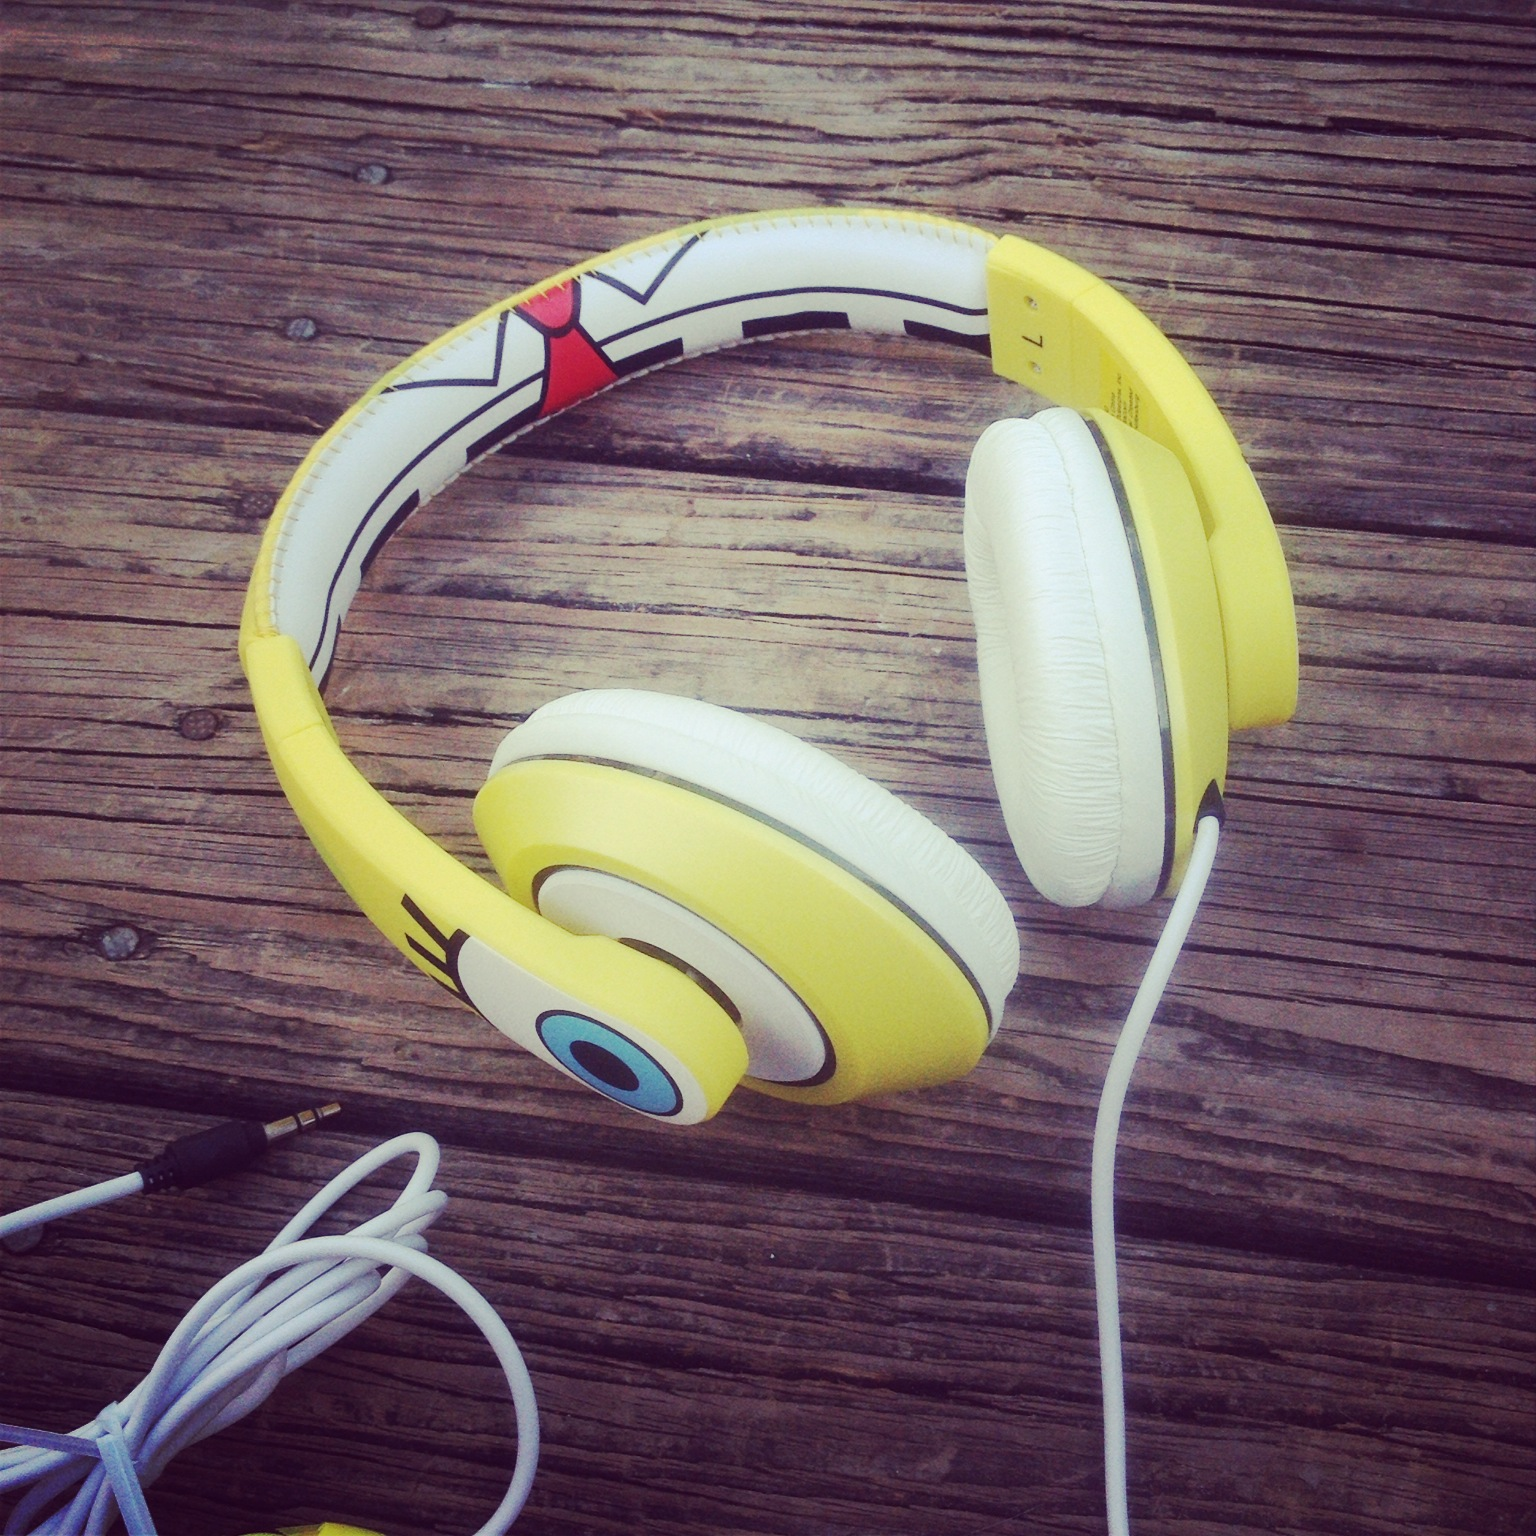 Spongebob Squarepants Over the Ear Headphones